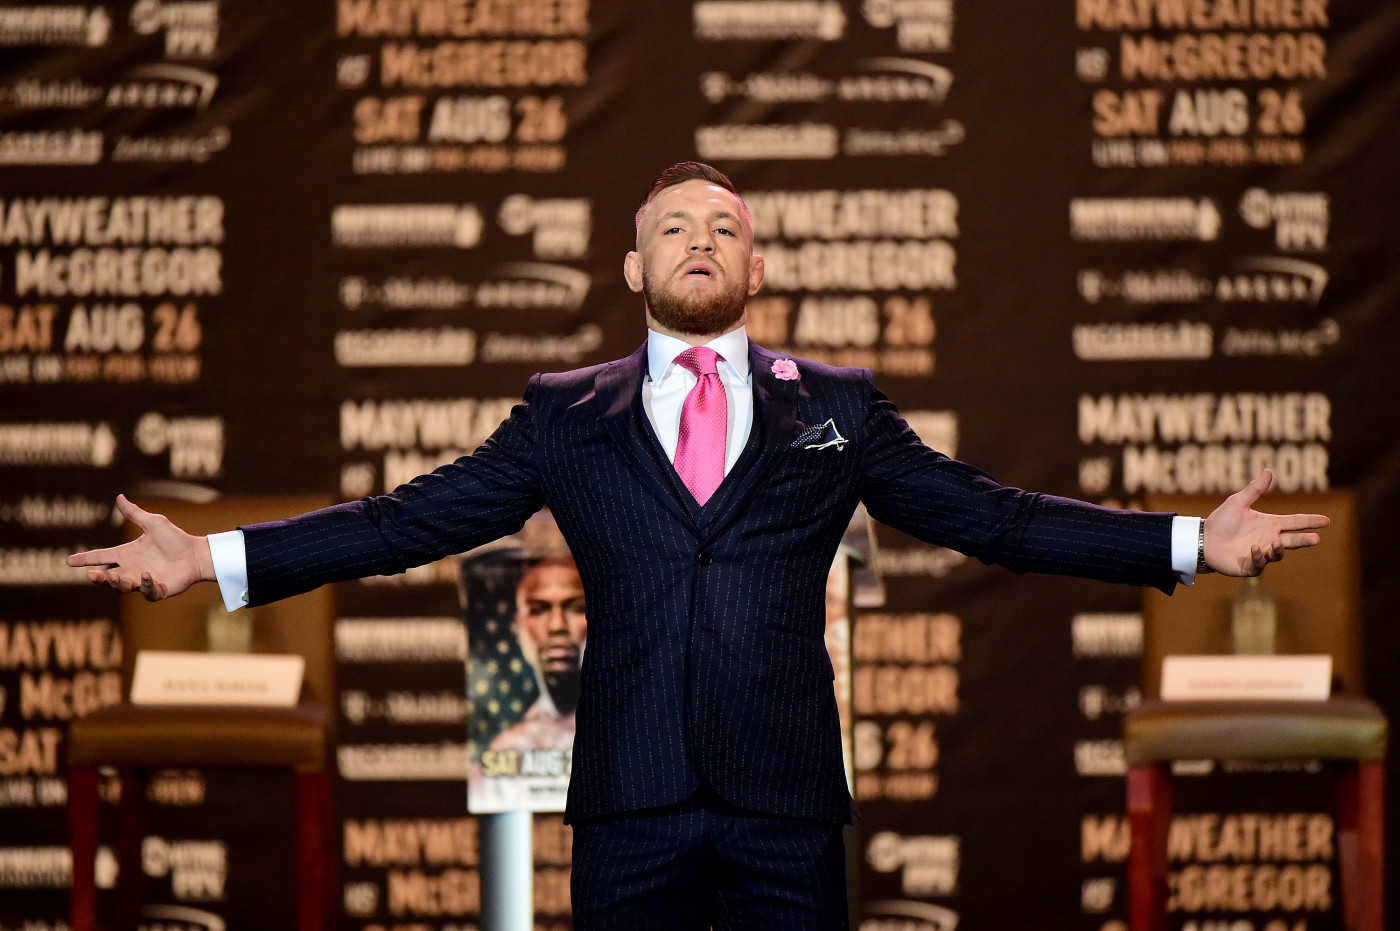 Conor McGregor on tour promoting Floyd Mayweather fight